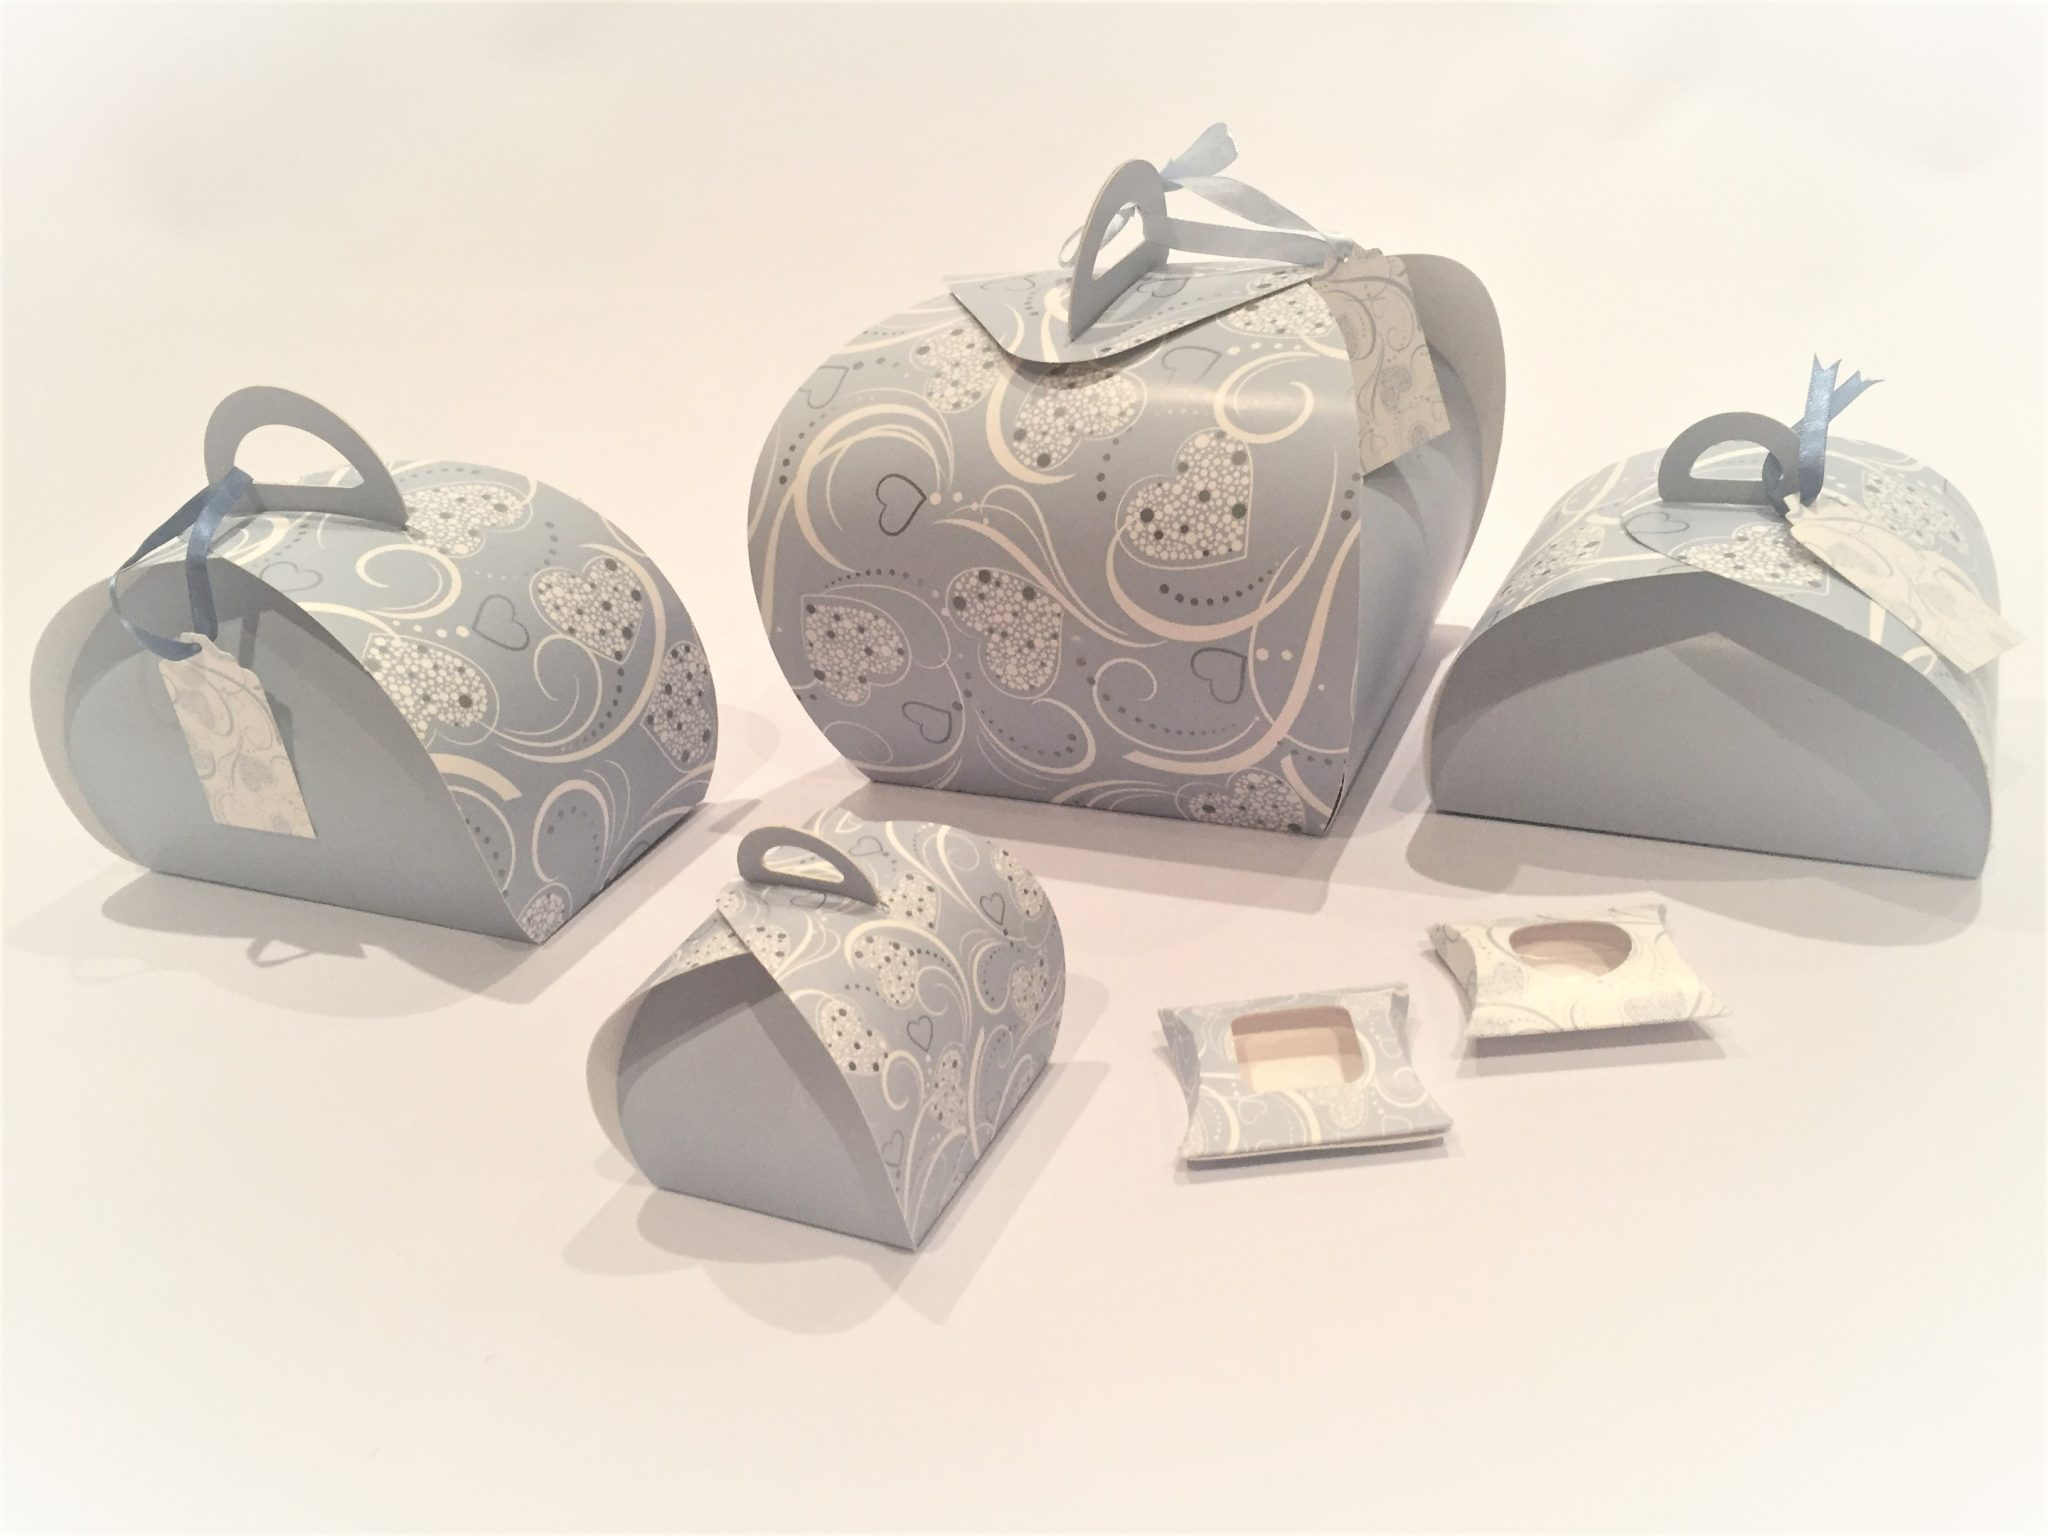 Blue Amoré Patisserie Box & Pillow Pack Range